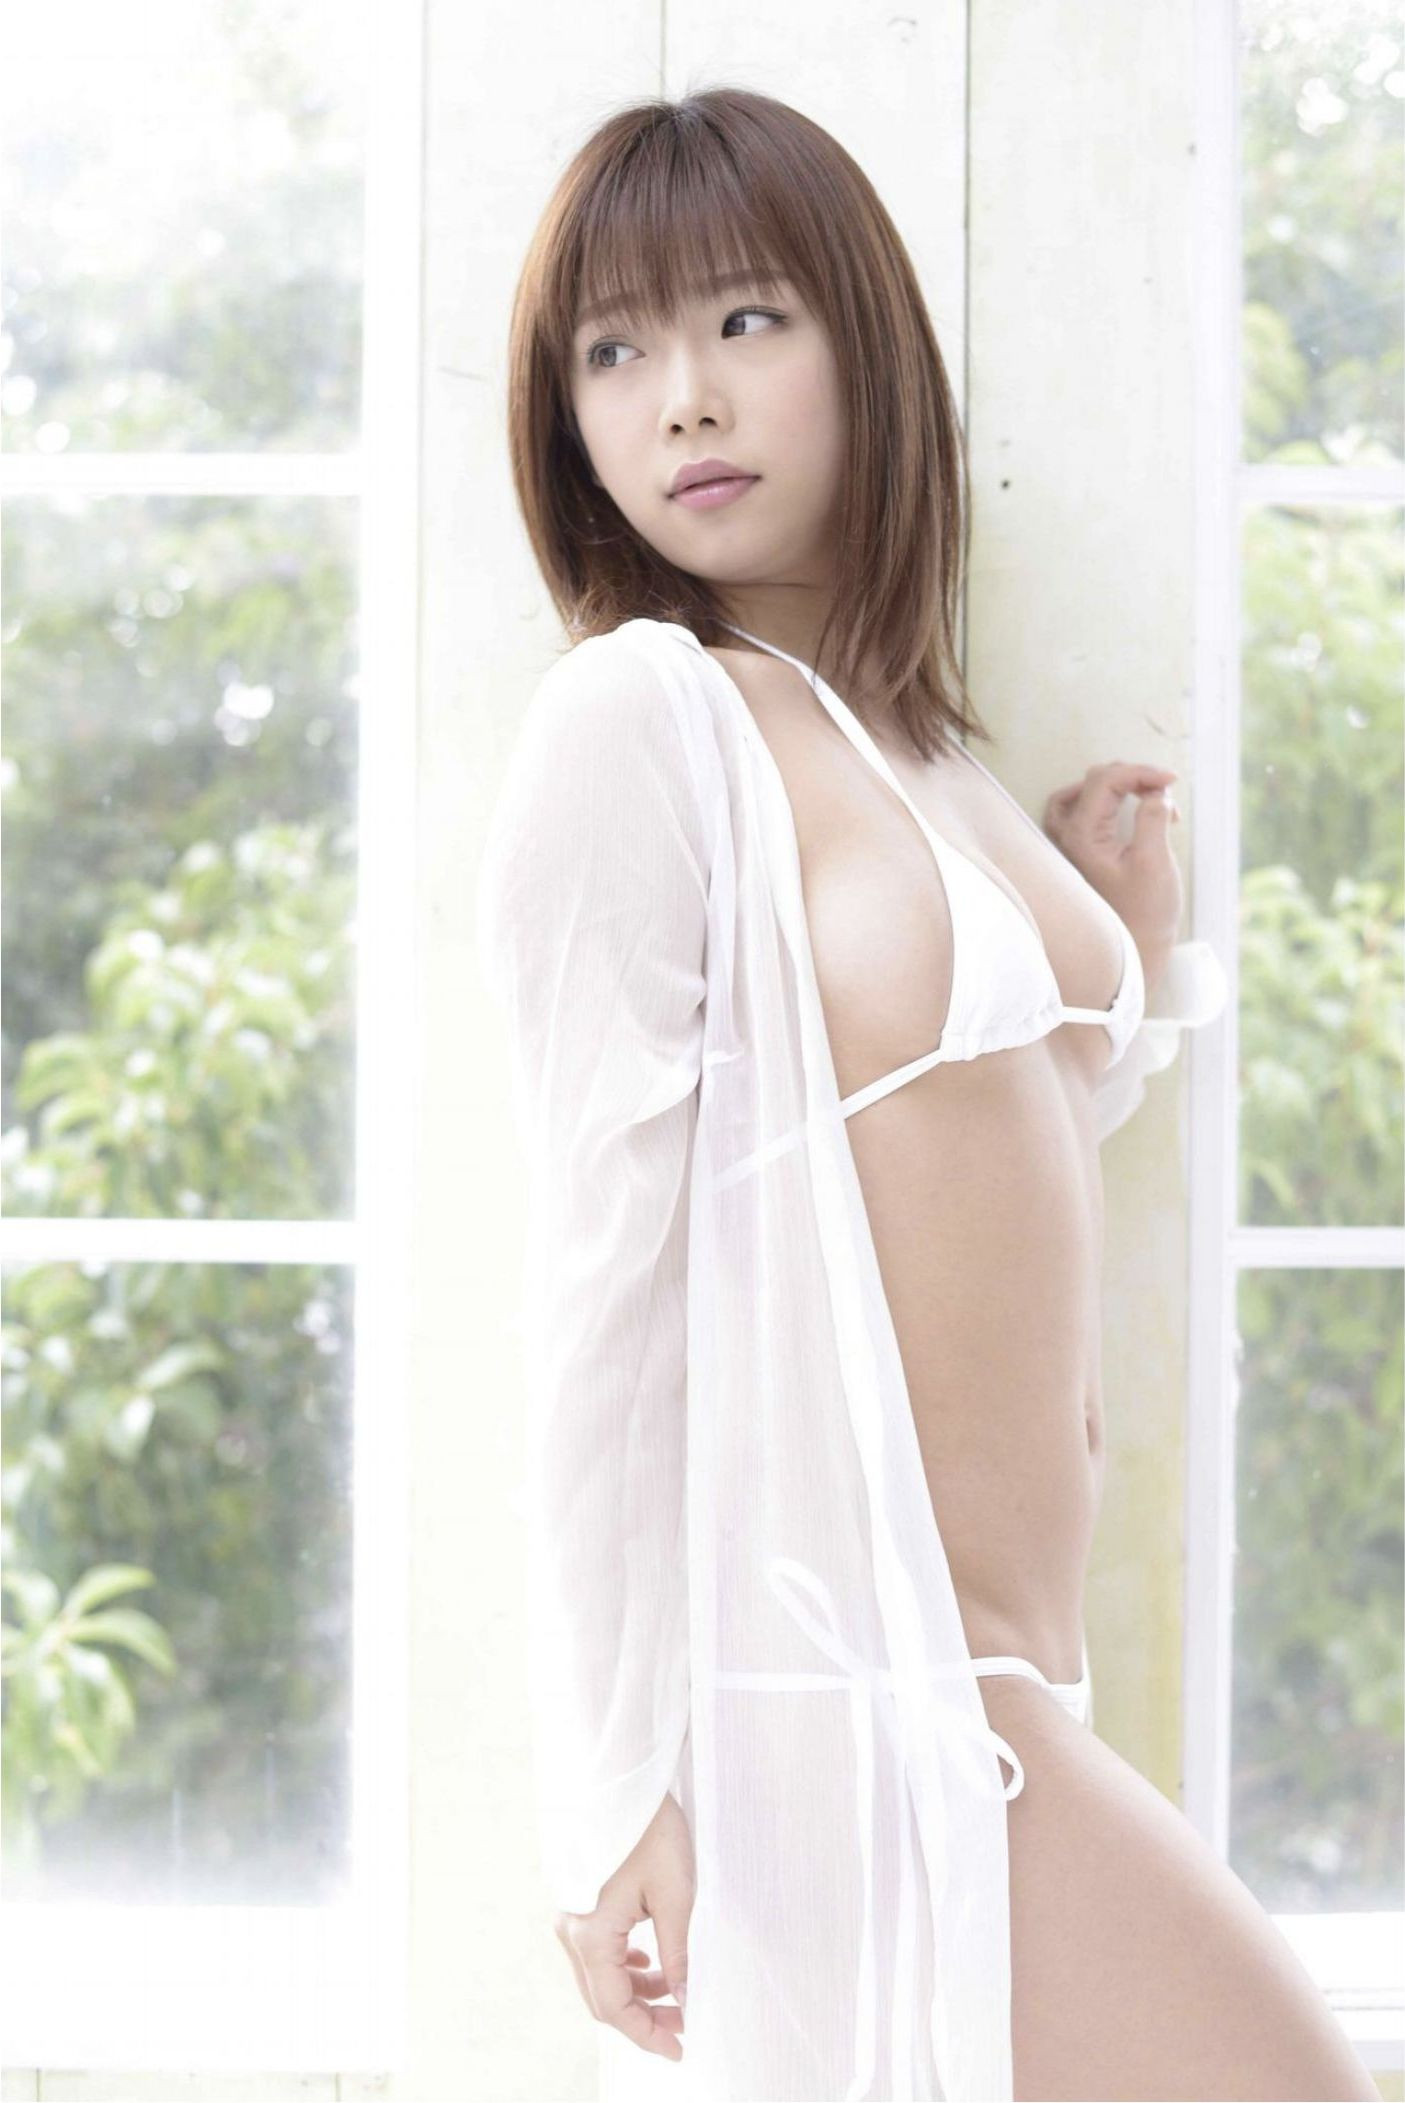 SOFT ON DEMAND GRAVURE COLLECTION 紗倉まな02 photo 012